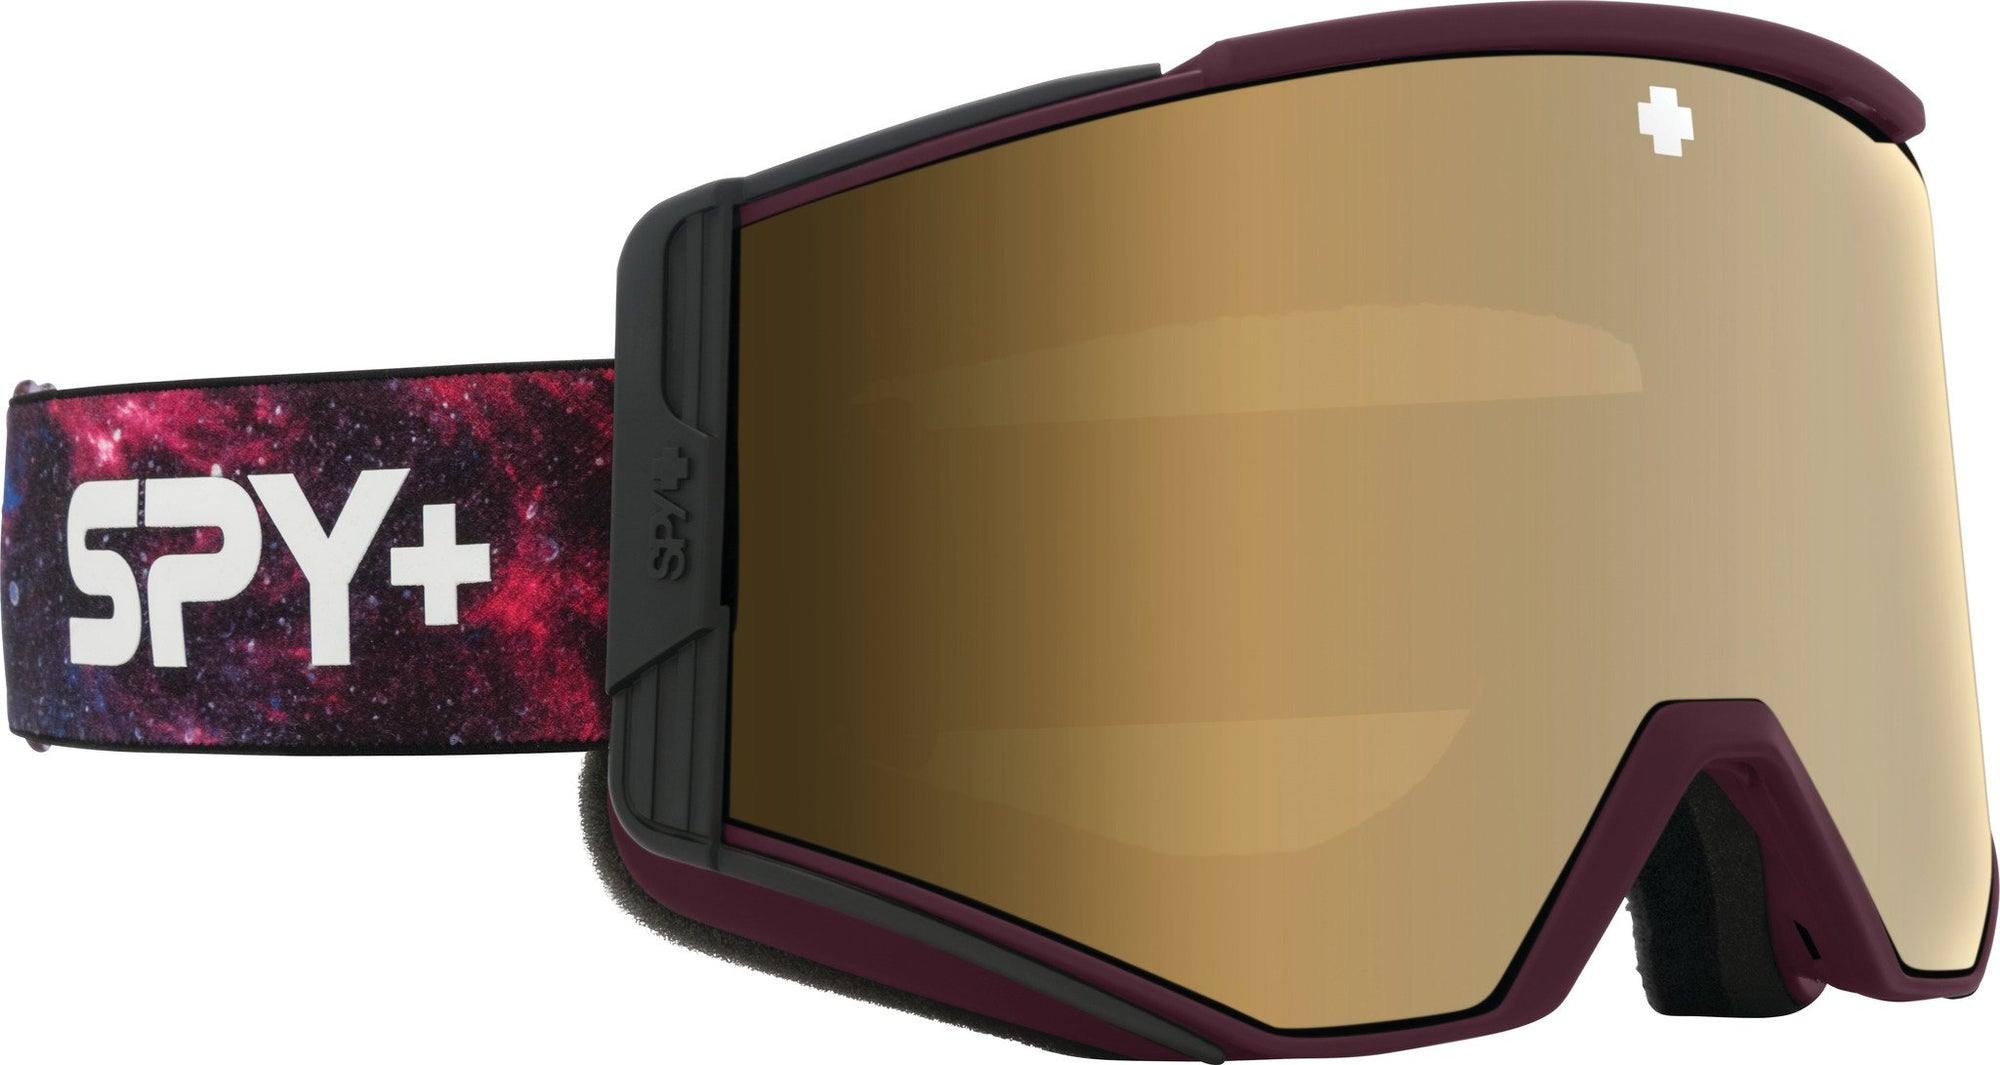 Spy Ace - Galaxy Purple - HD Plus Bronze w/ Gold Spectra Mirror + HD Plus LL Persimmon w/ Silver Spectra Mirror